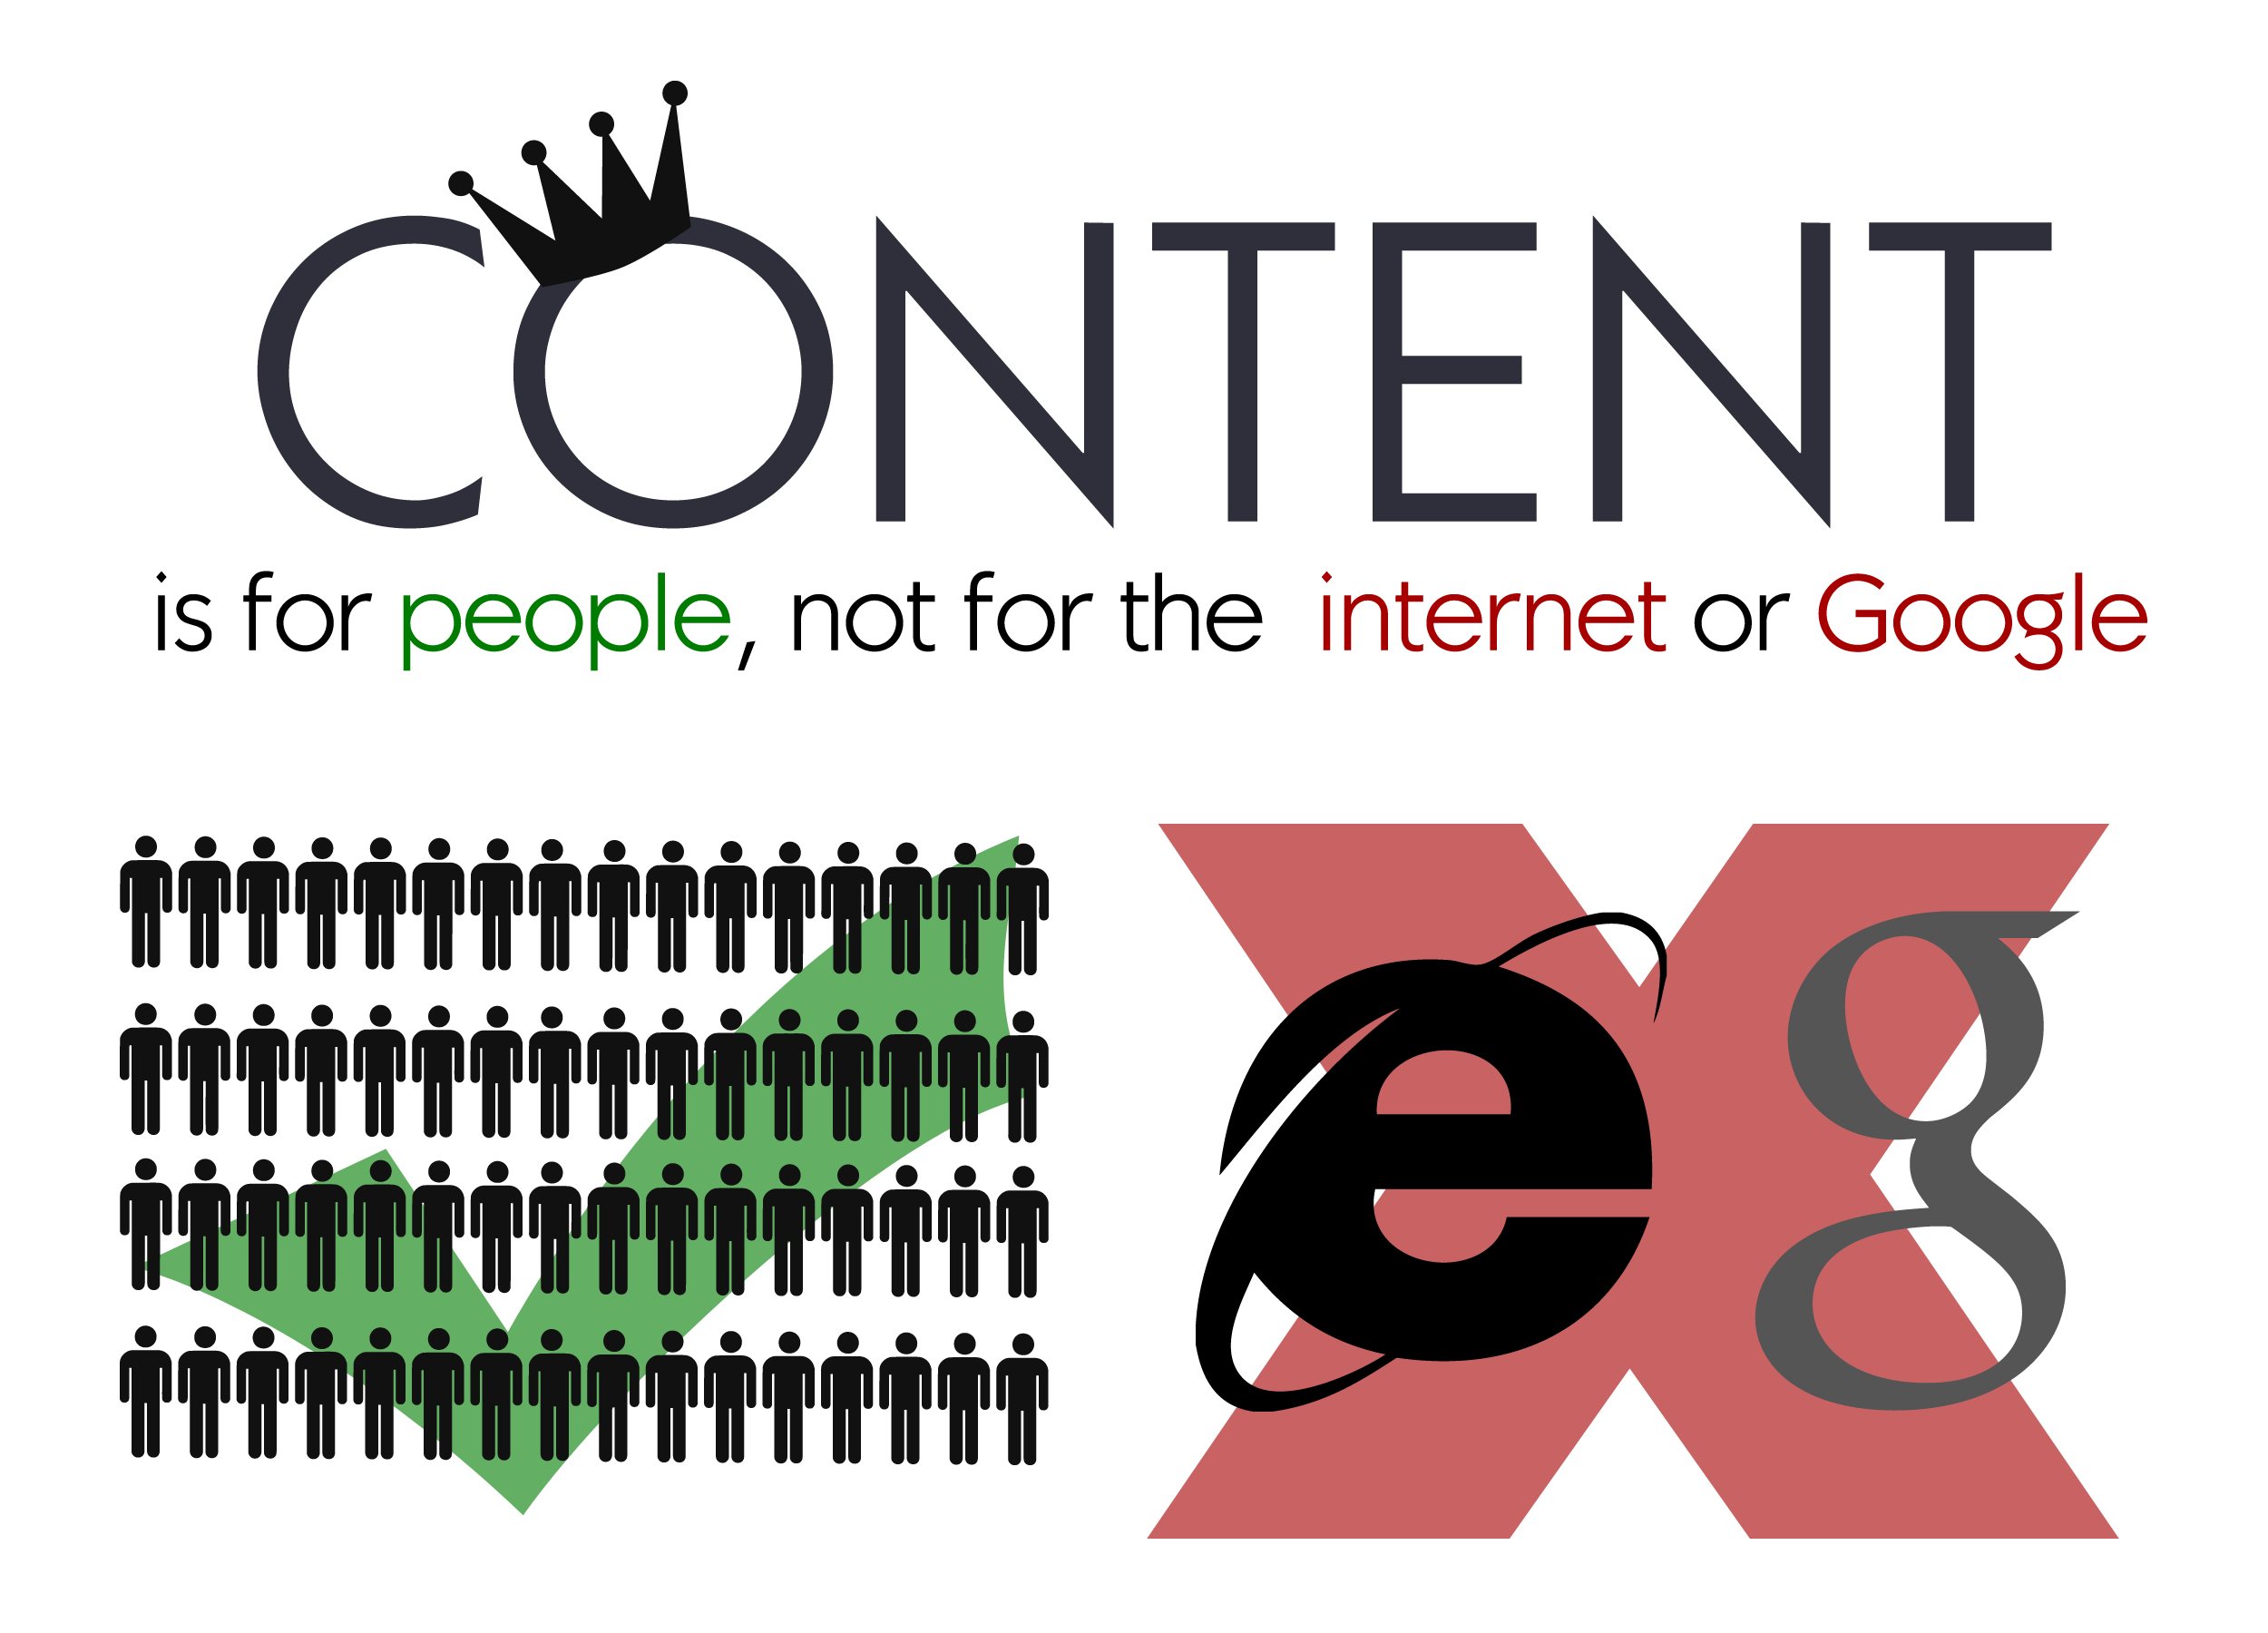 content is for people not for Google